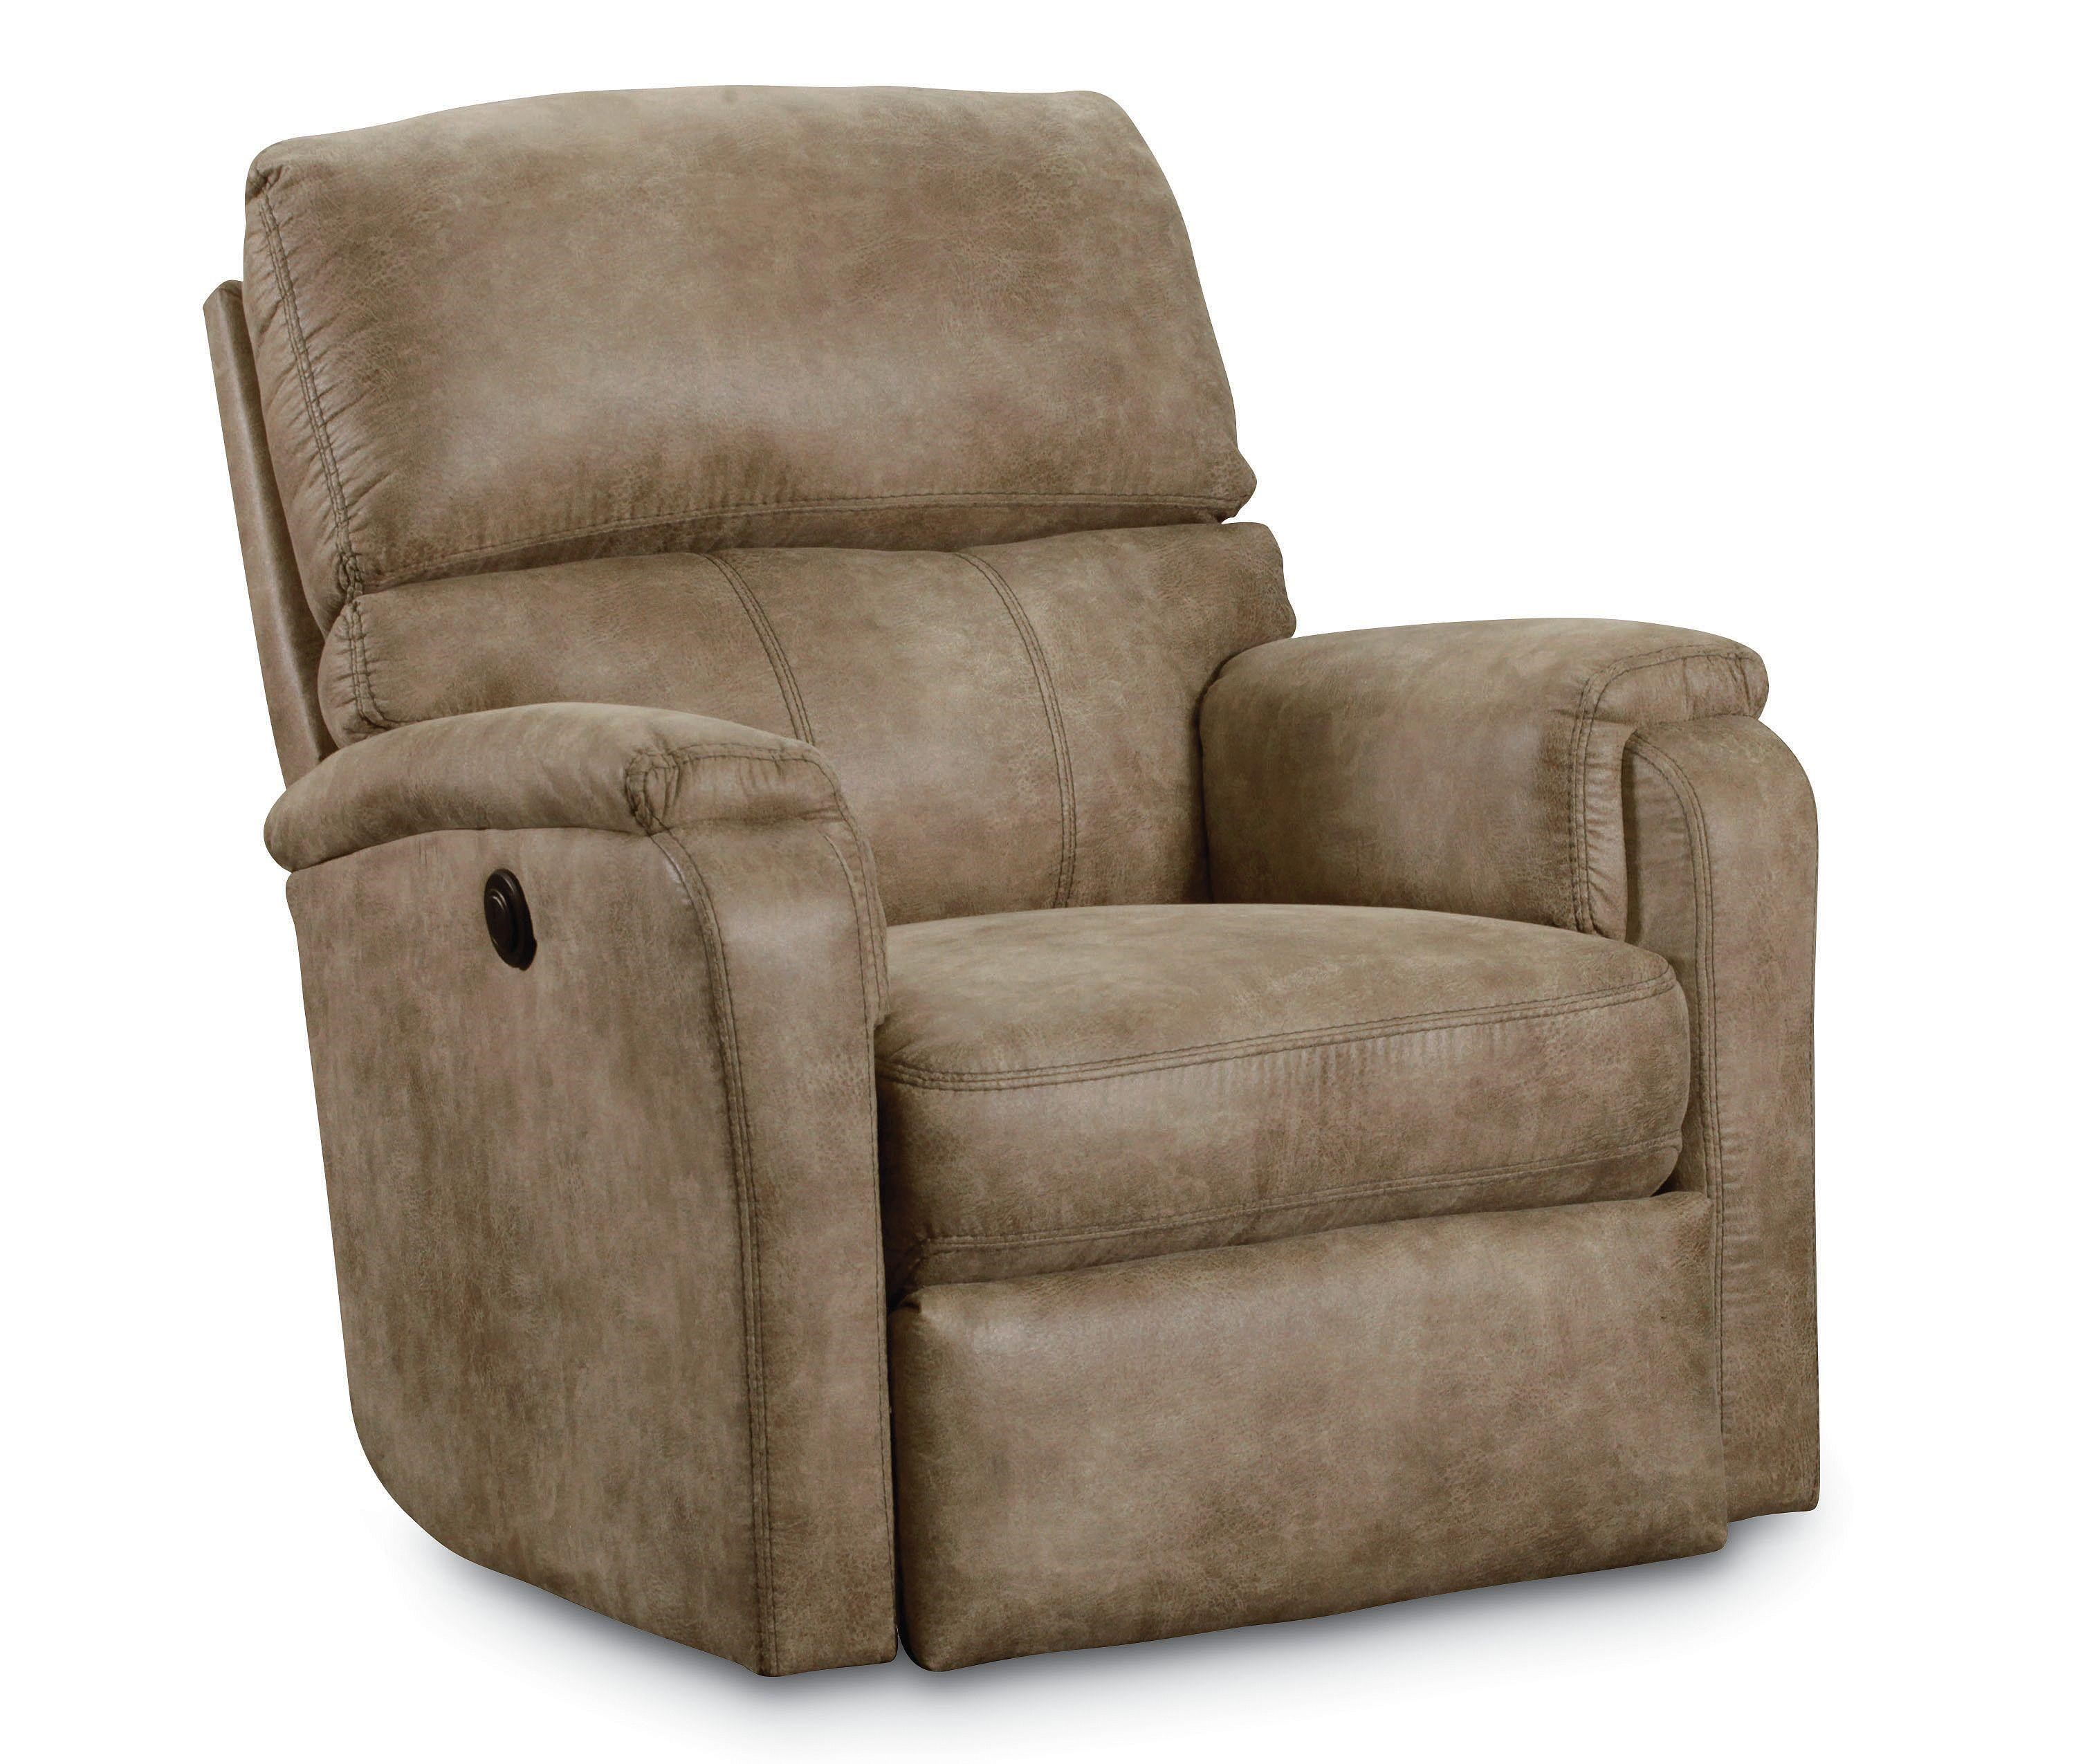 Lane Glider Recliners Harrison Glider Recliner Broyhill  : products2Flane2Fcolor2Fglider20 20lane416 95l b0jpgscalebothampwidth500ampheight500ampfsharpen25ampdown from www.broyhillofdenver.com size 500 x 500 jpeg 30kB